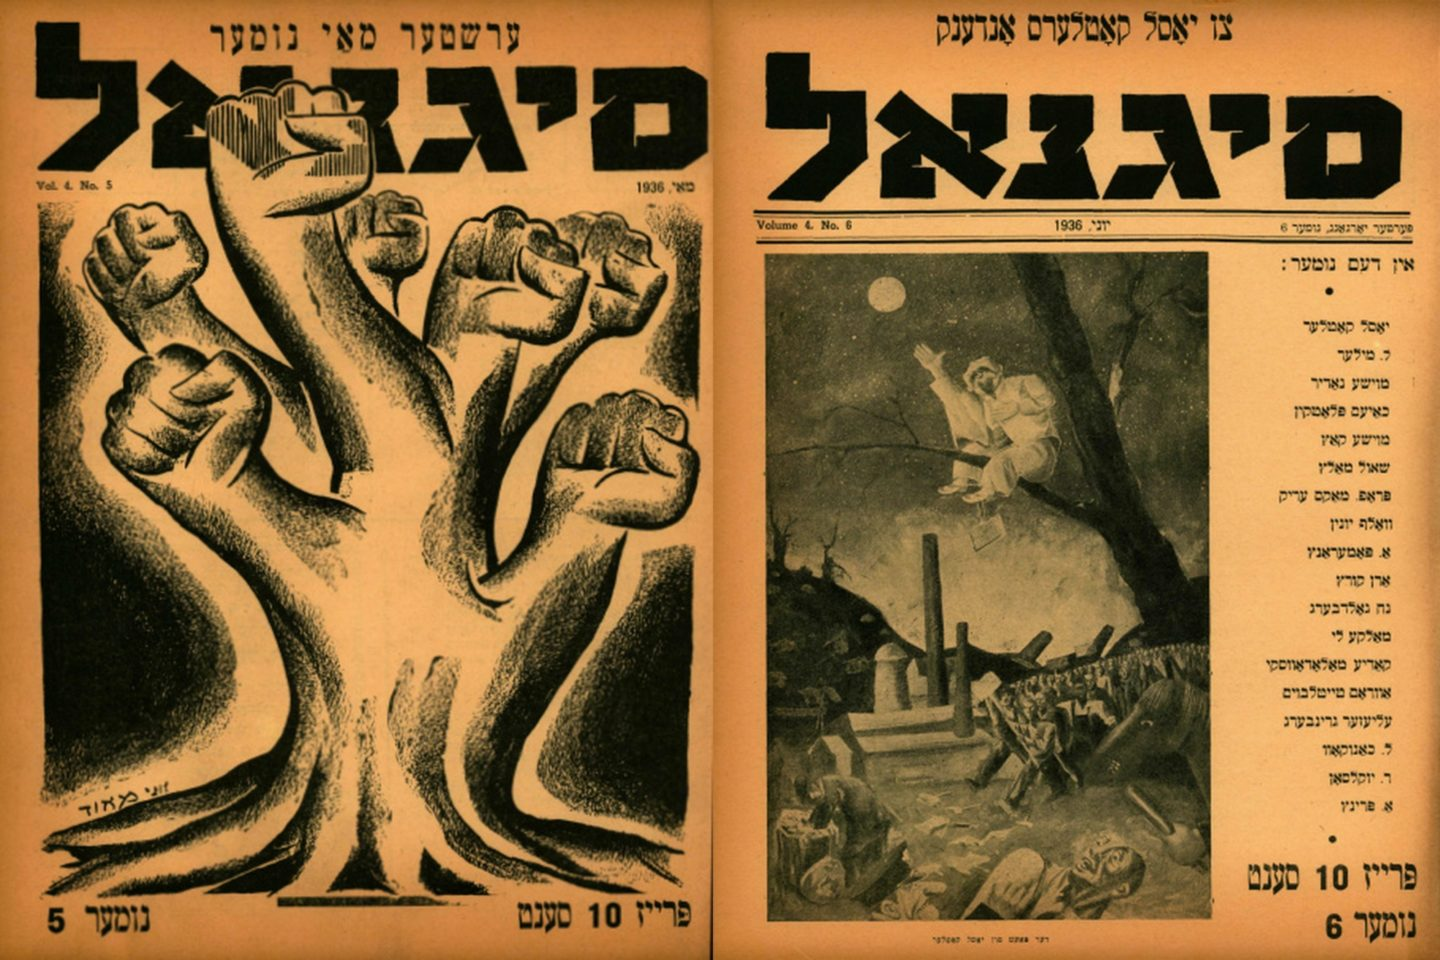 <p>Covers of the periodical, <em>Signal</em></p>